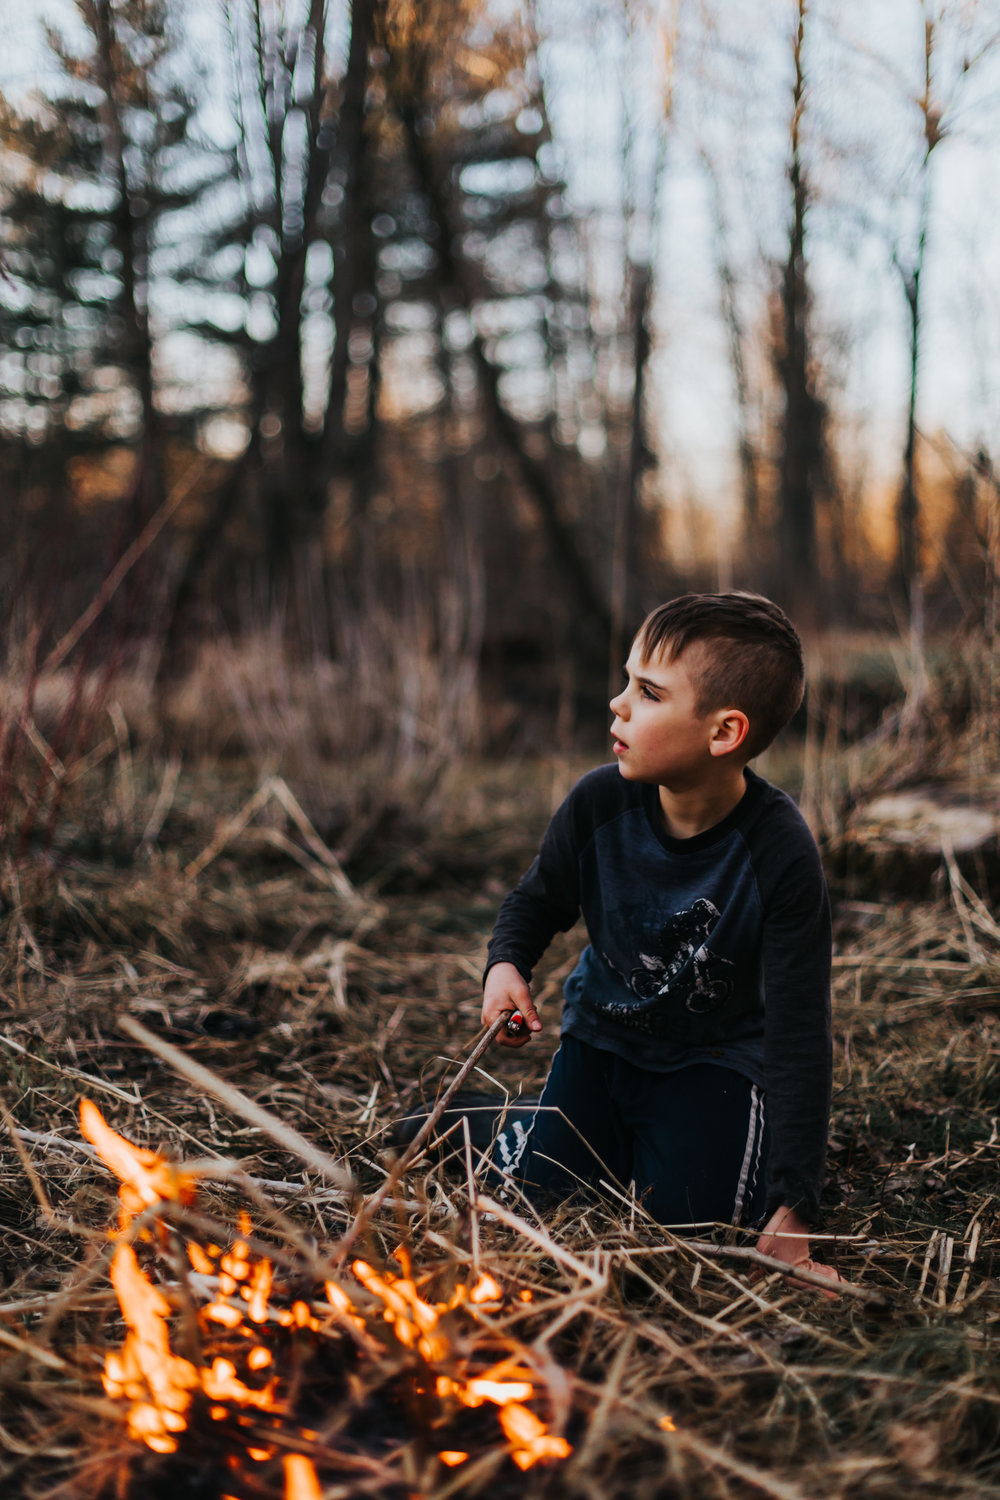 young boy lighting a fire in tall grass